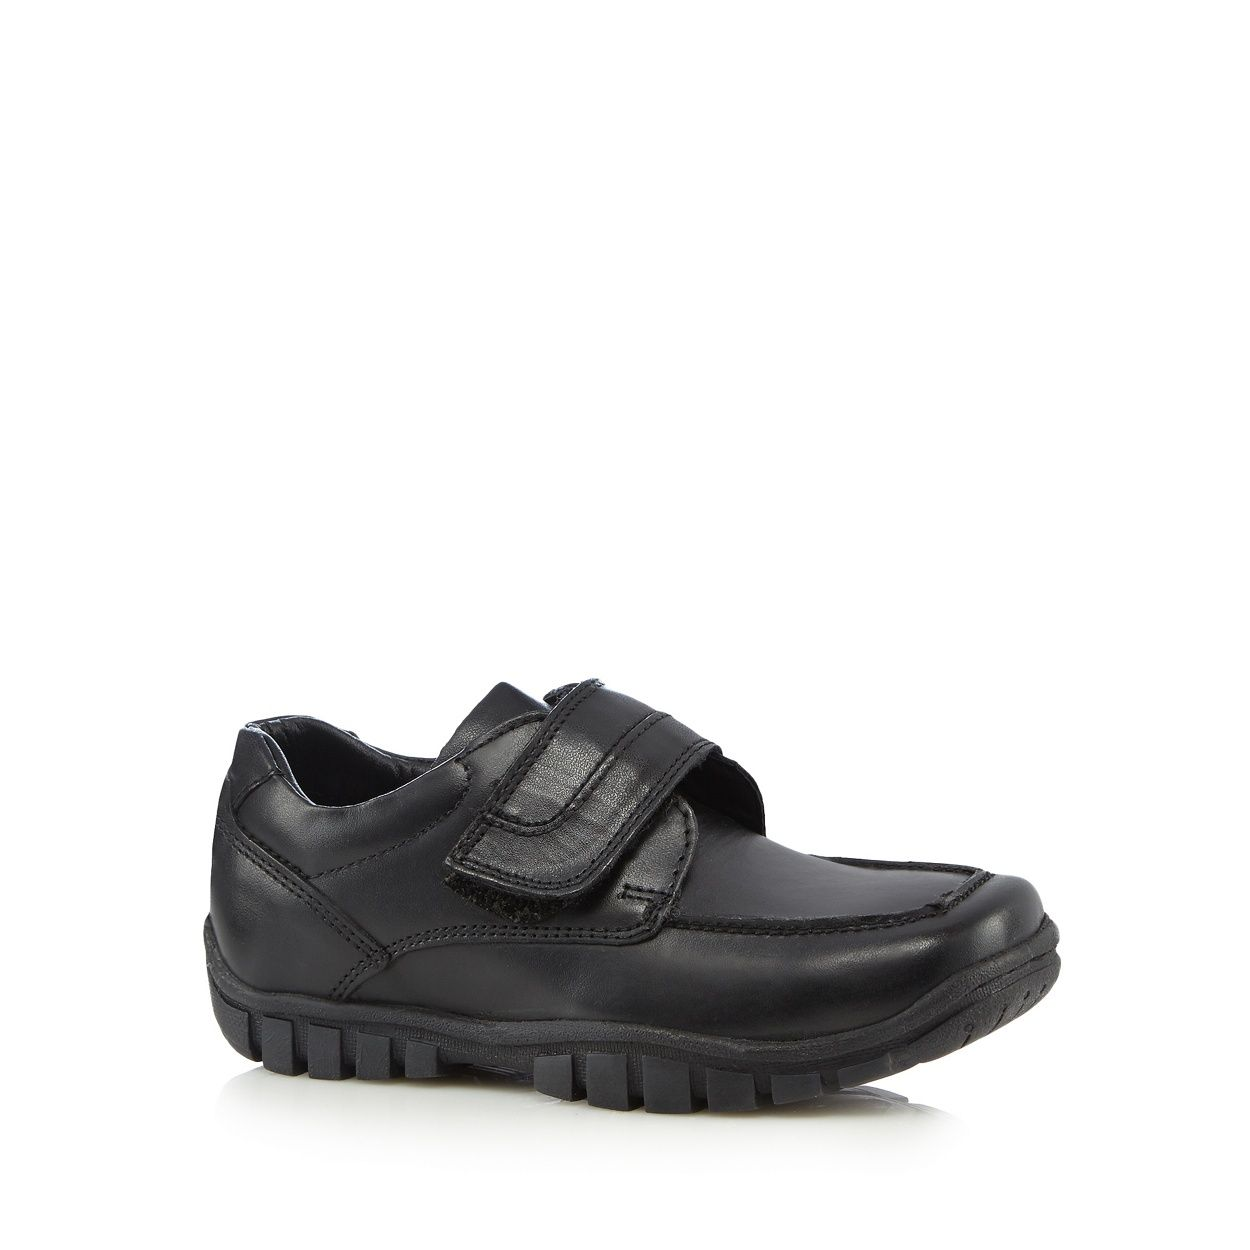 These shoes from our Back to school